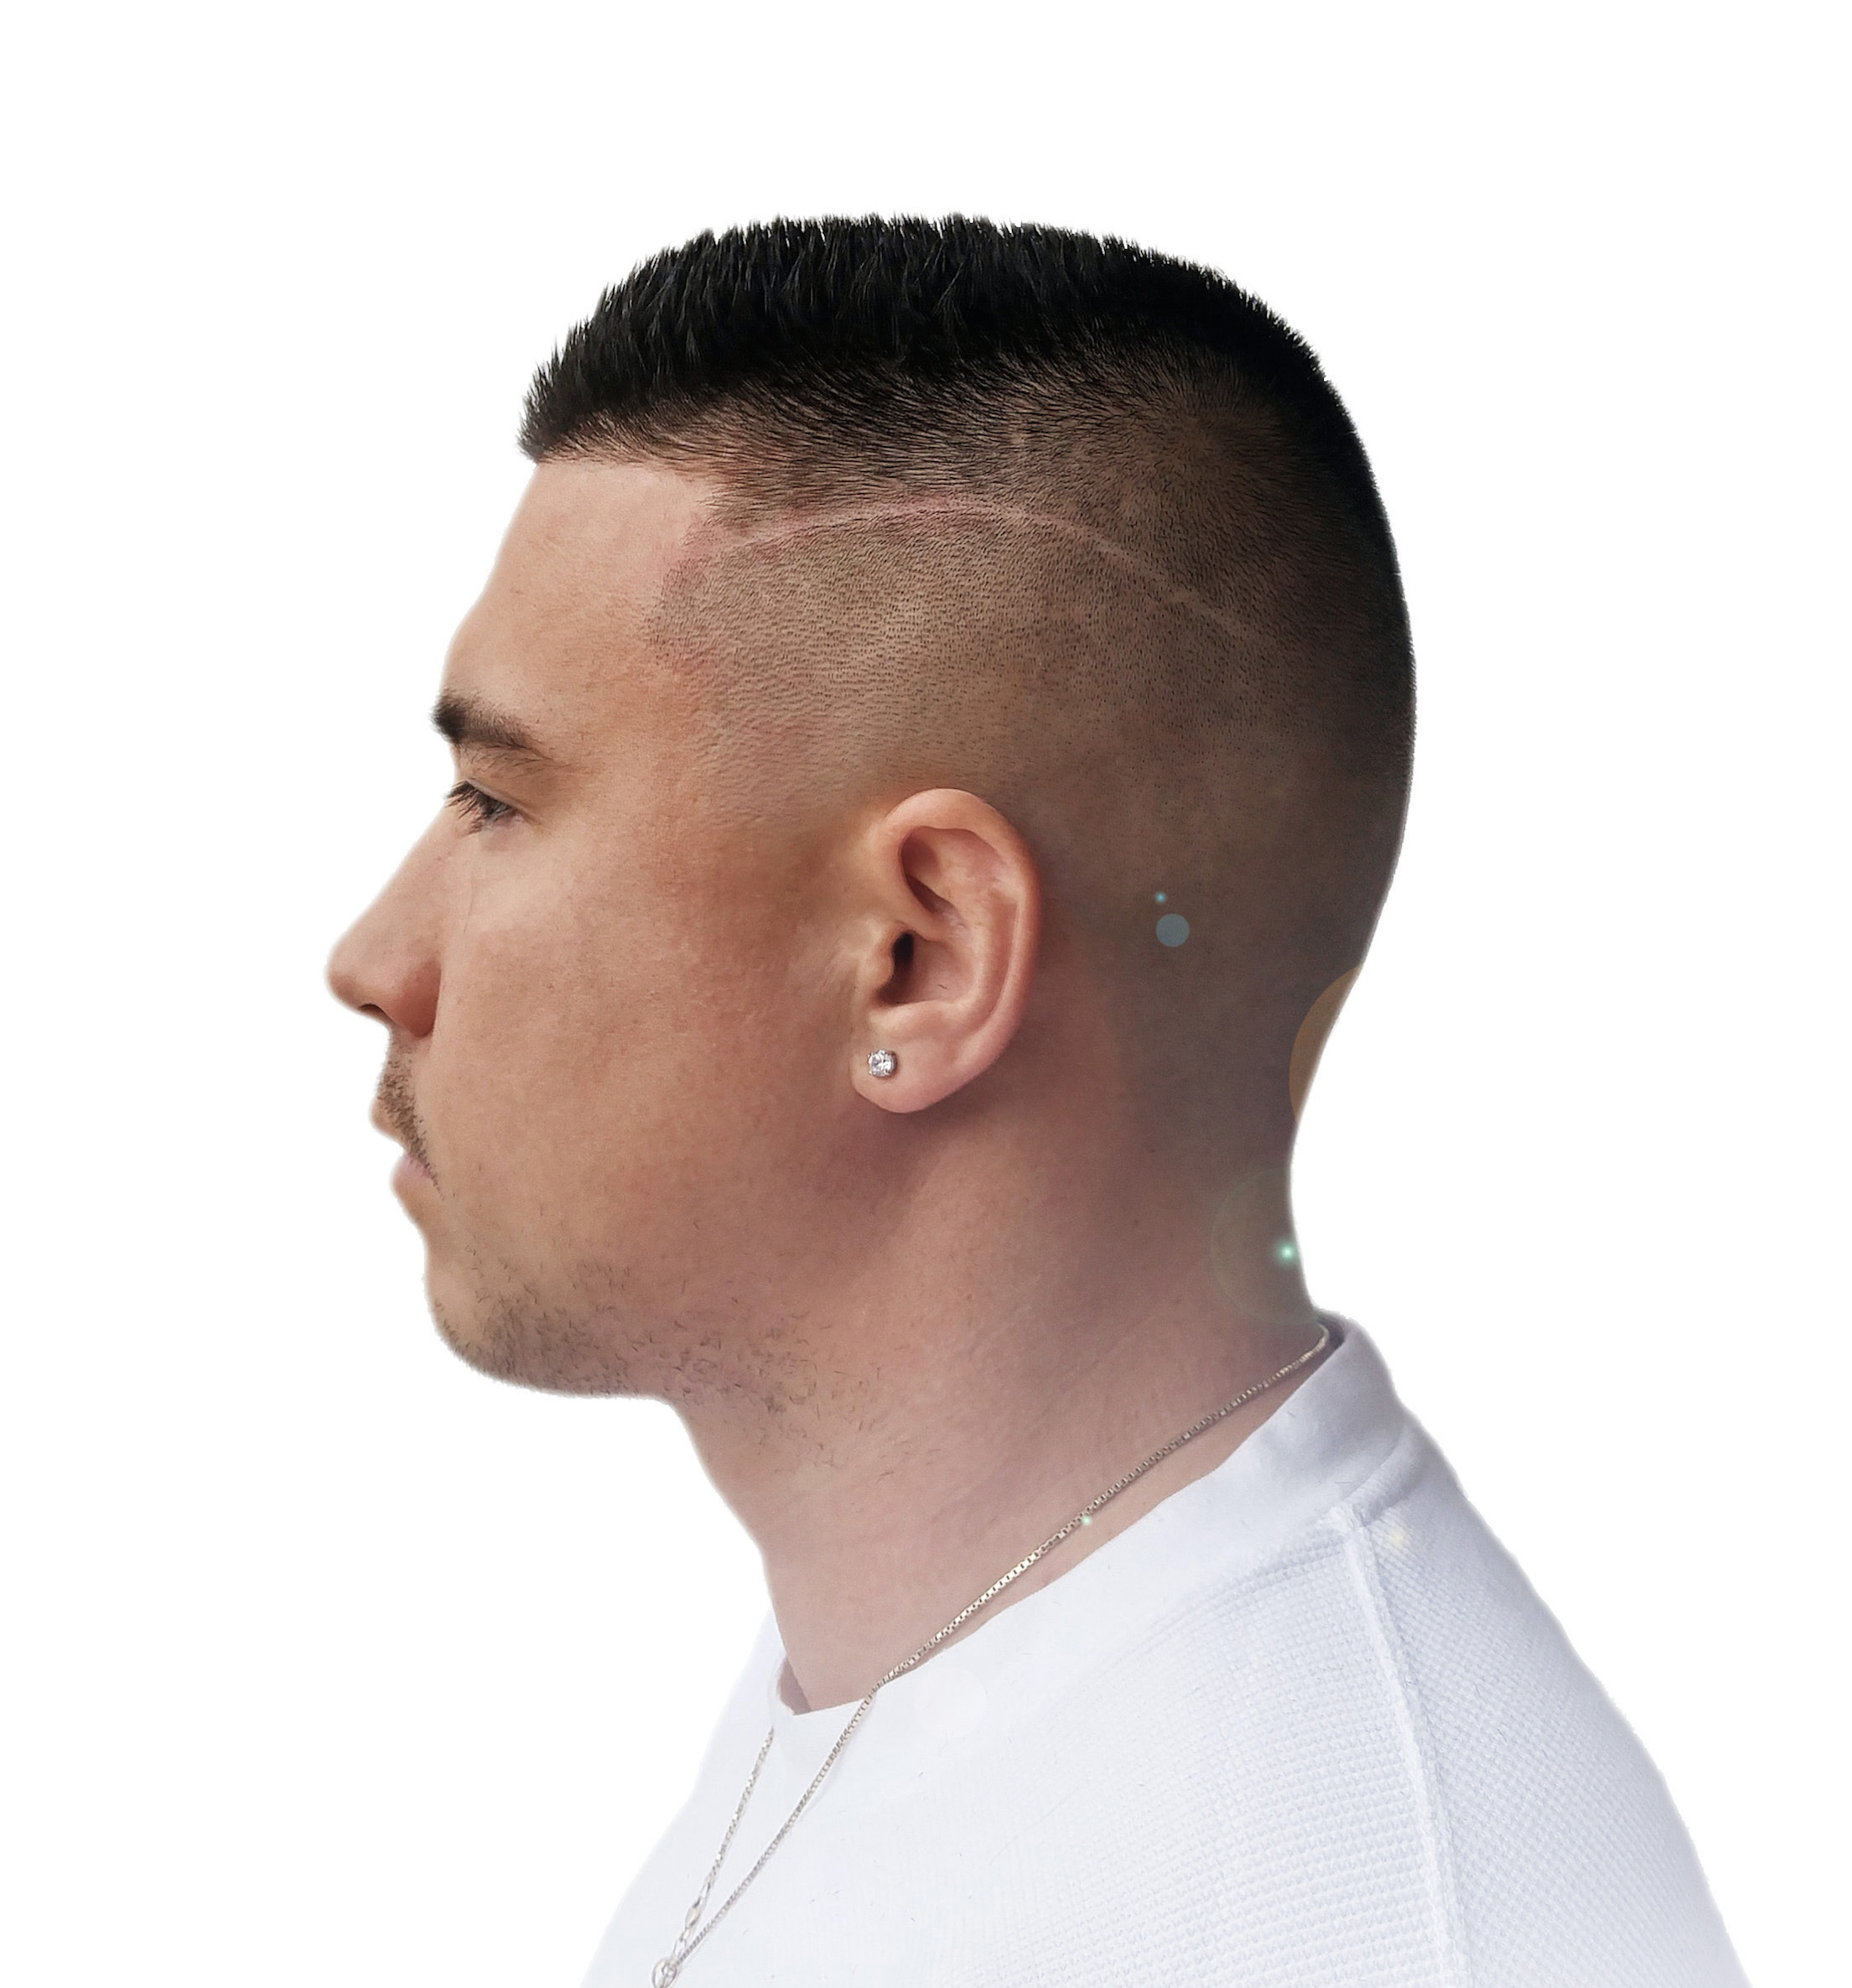 Where to find the best fade barber